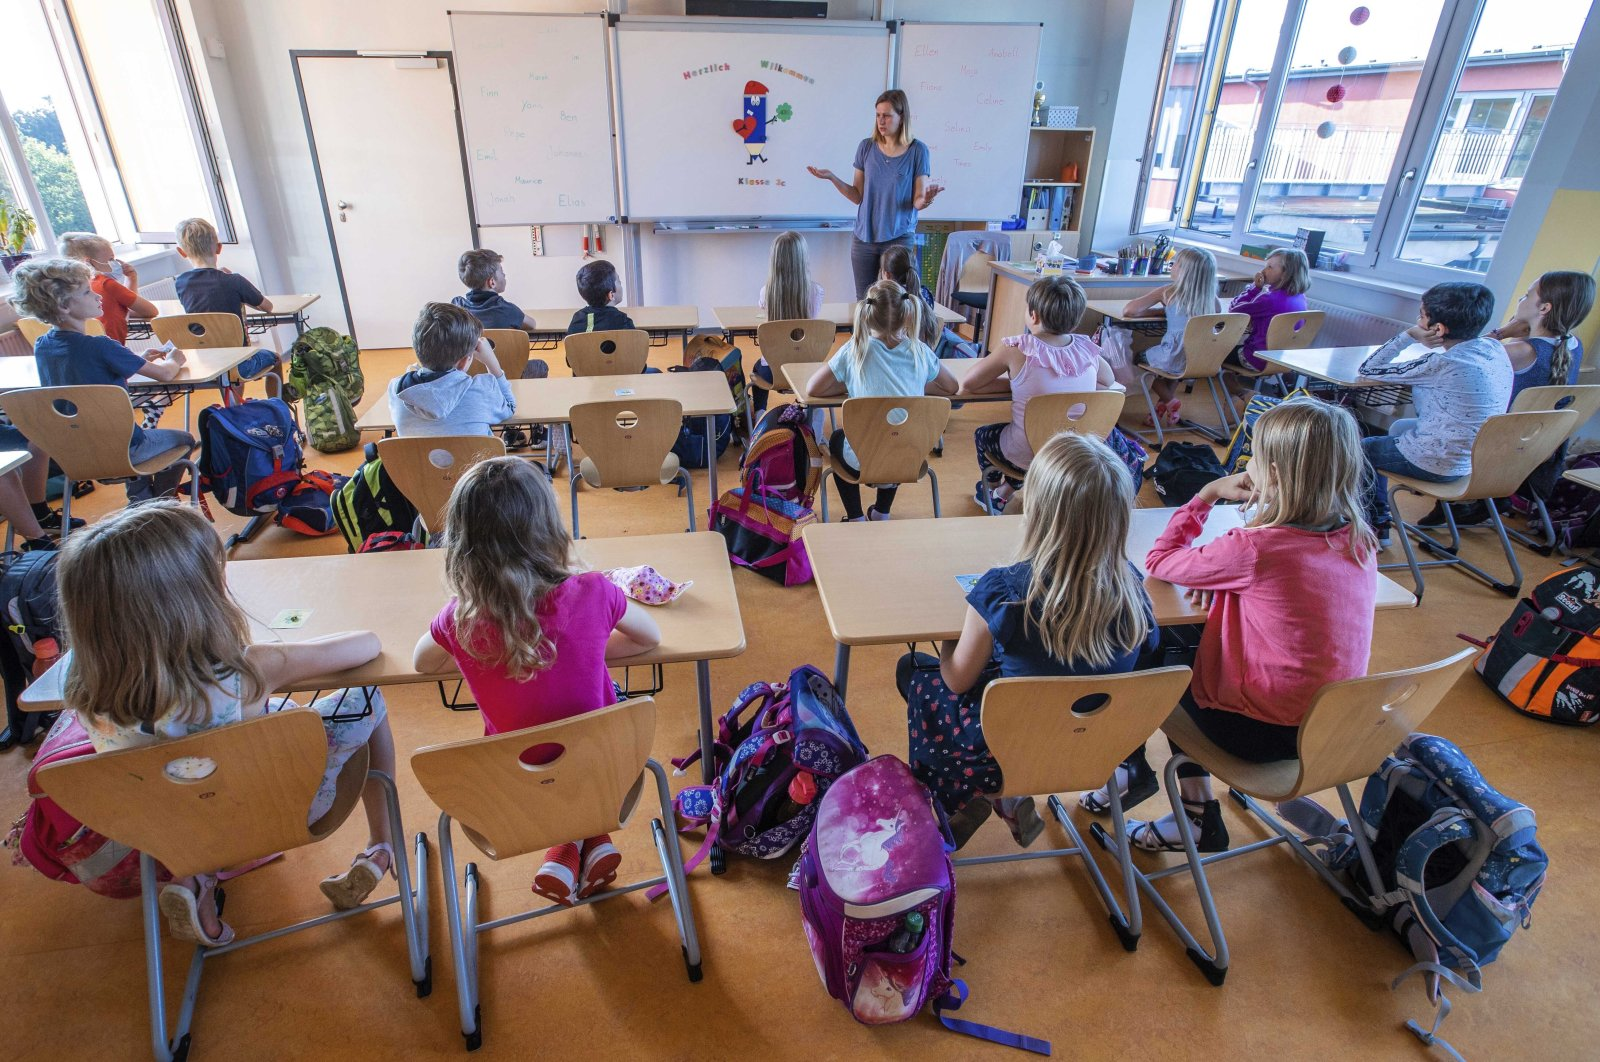 Teacher Francie Keller welcomes his pupils to the Lankow primary school on the first day of school in Schwerin, Germany, Aug. 3, 2020. (AP Photo)